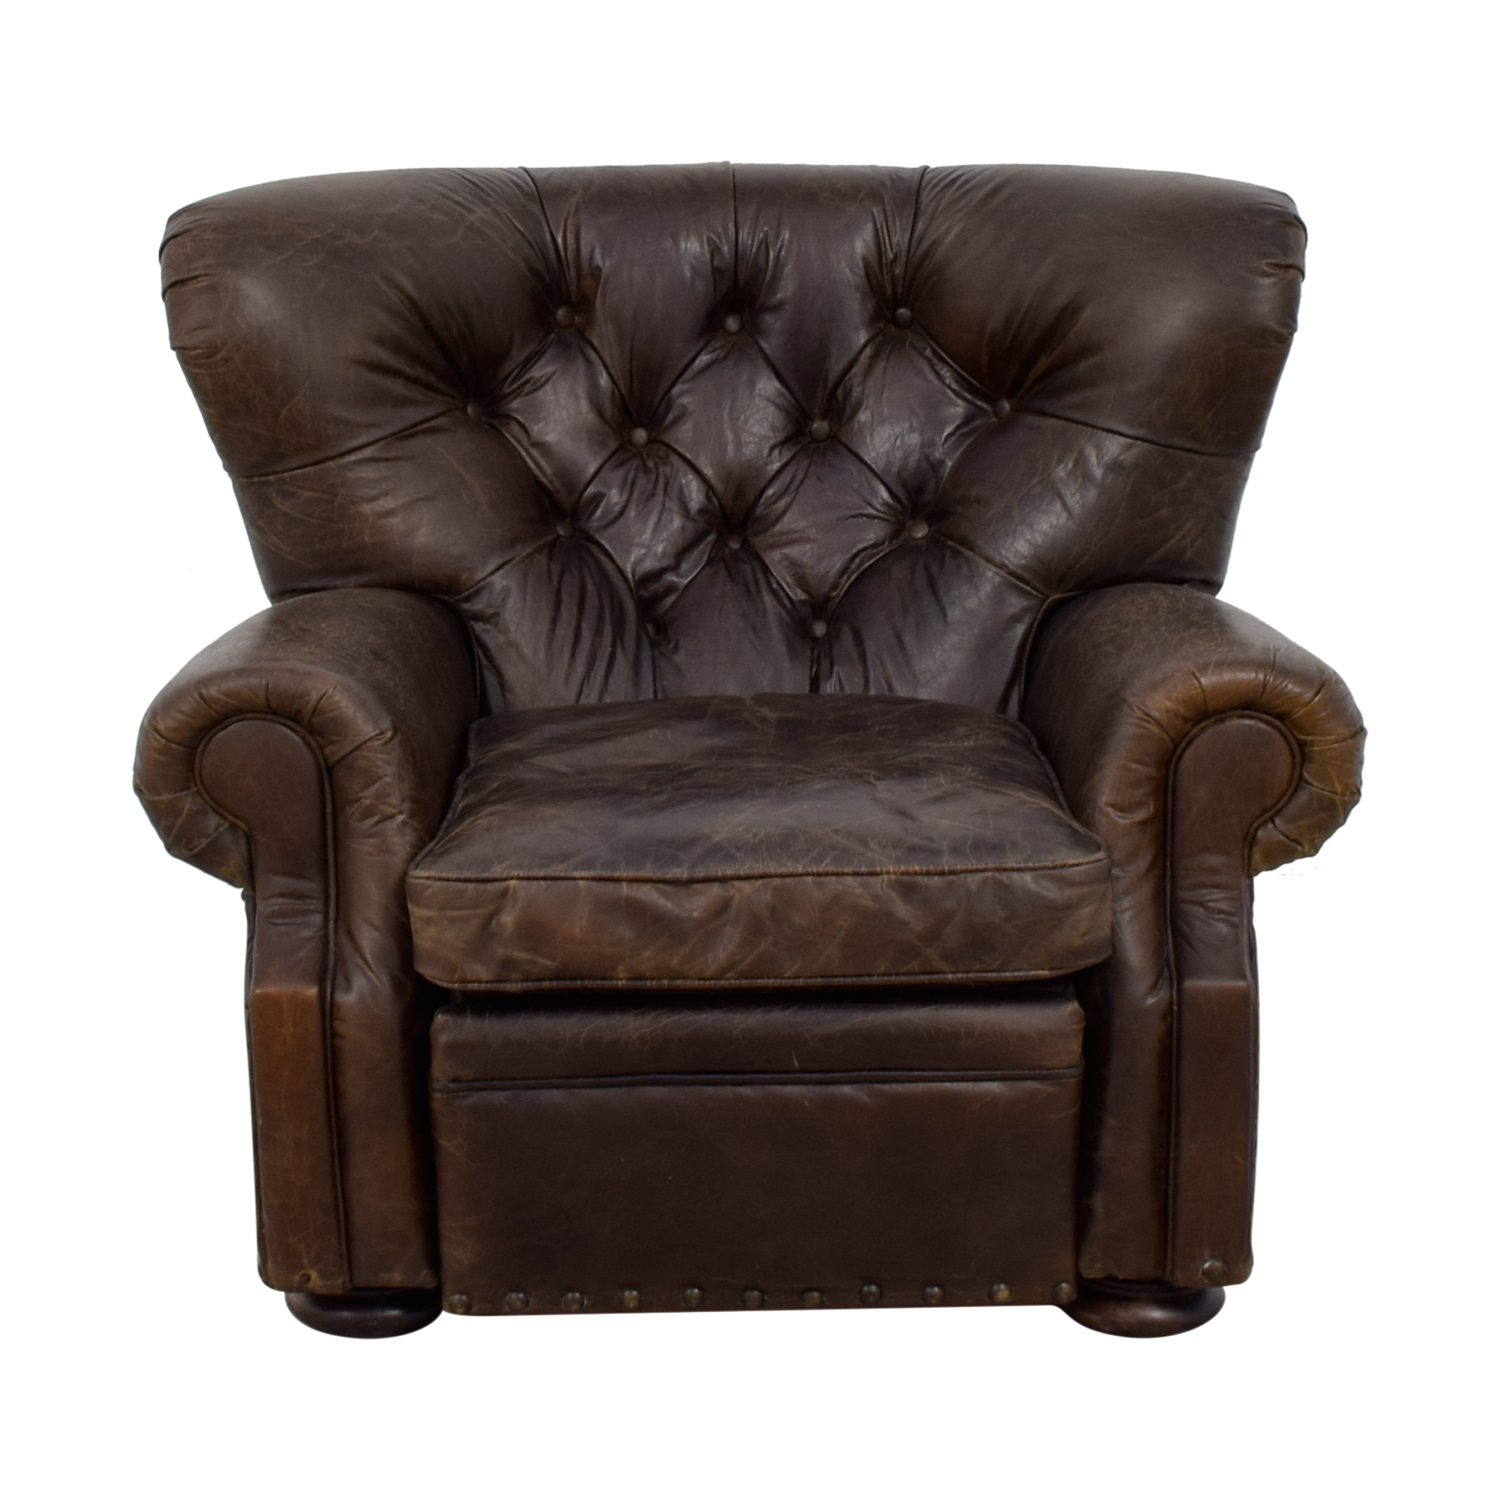 Restoration Hardware Restoration Hardware Churchill Brown Leather Nailhead Tufted Recliner discount